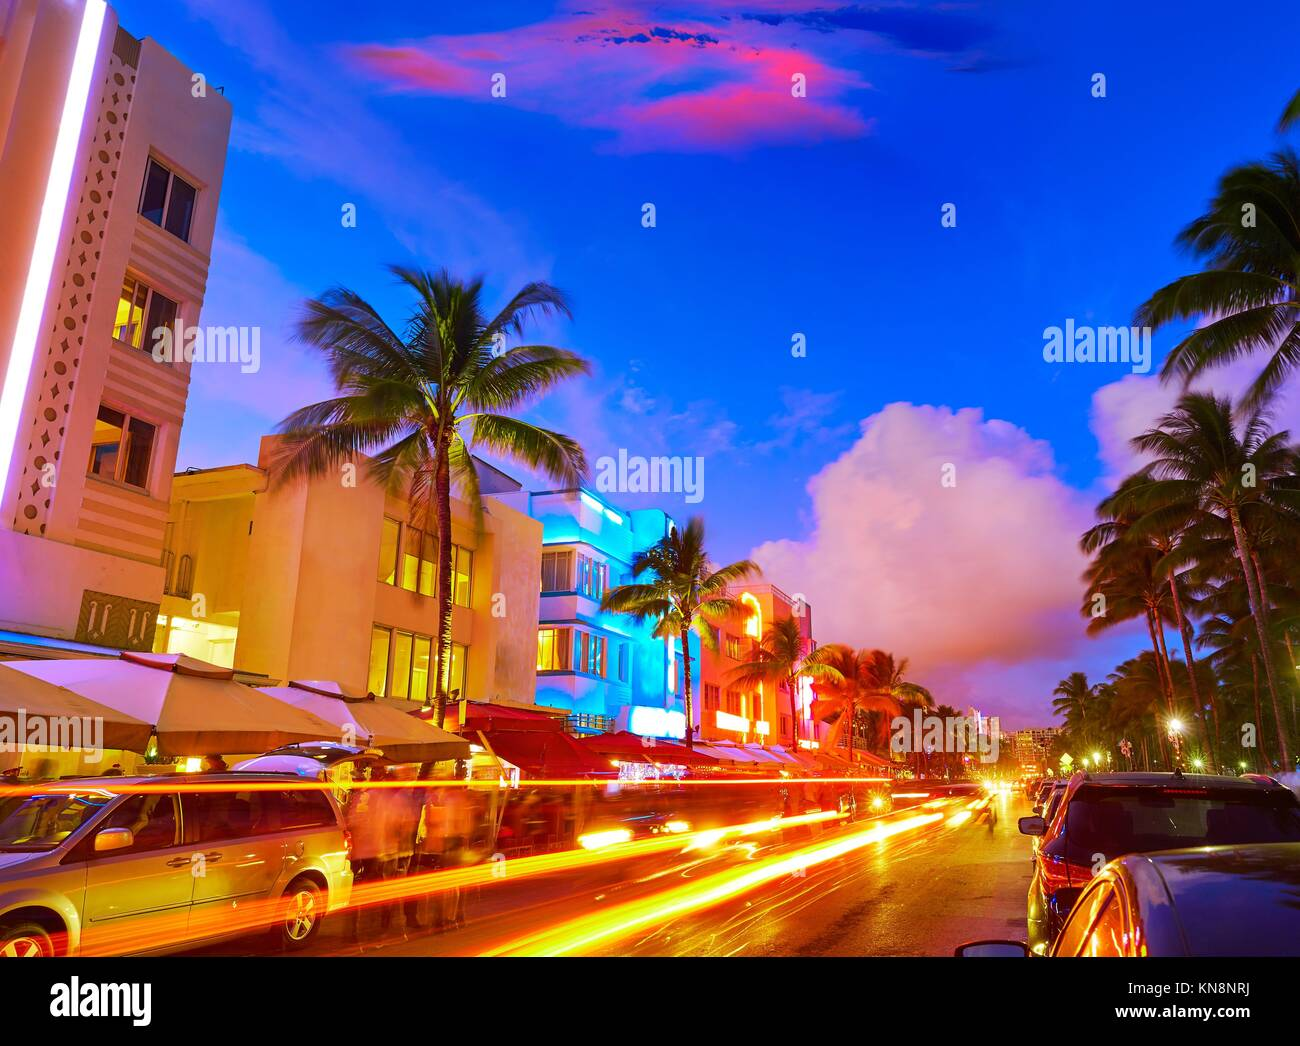 Miami Beach South Beach sunset in Ocean Drive Florida Art Deco and car lights. - Stock Image